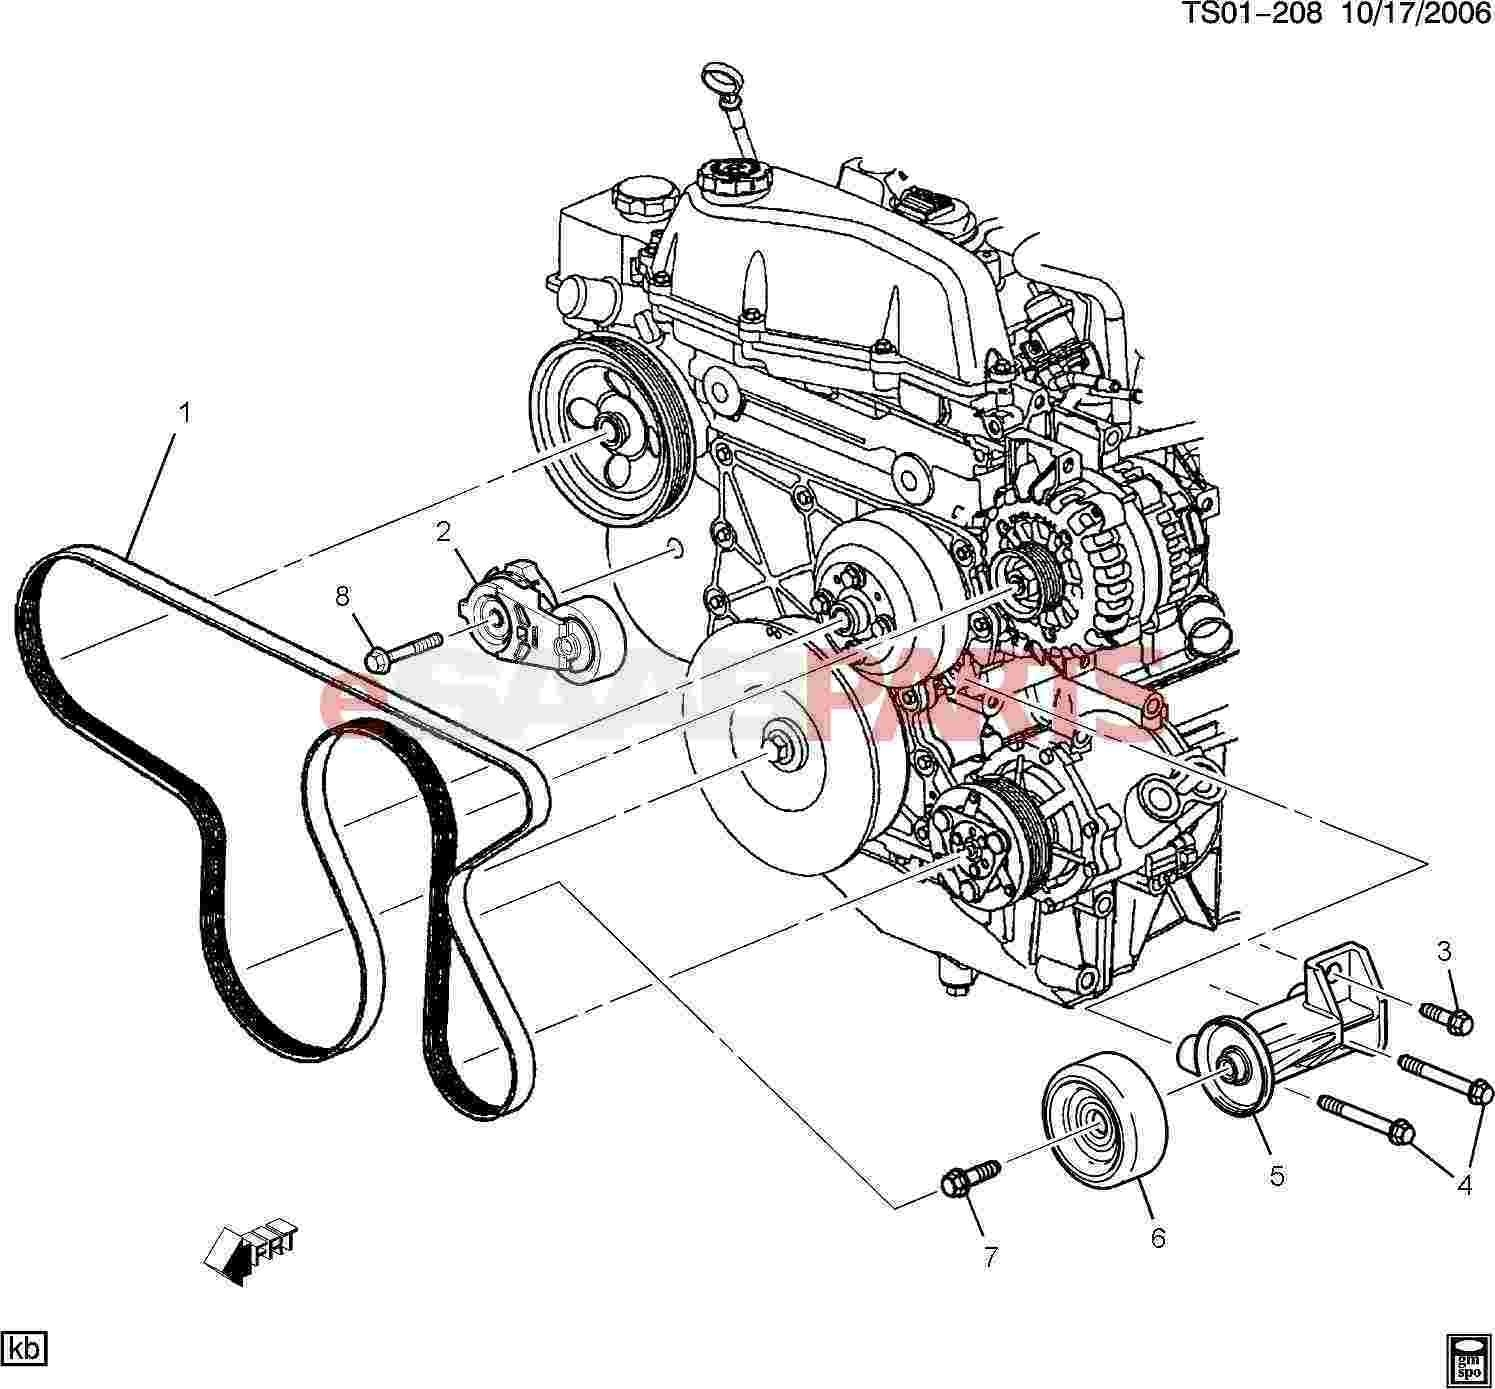 2003 Gmc Envoy Engine Diagram - Basic Guide Wiring Diagram •